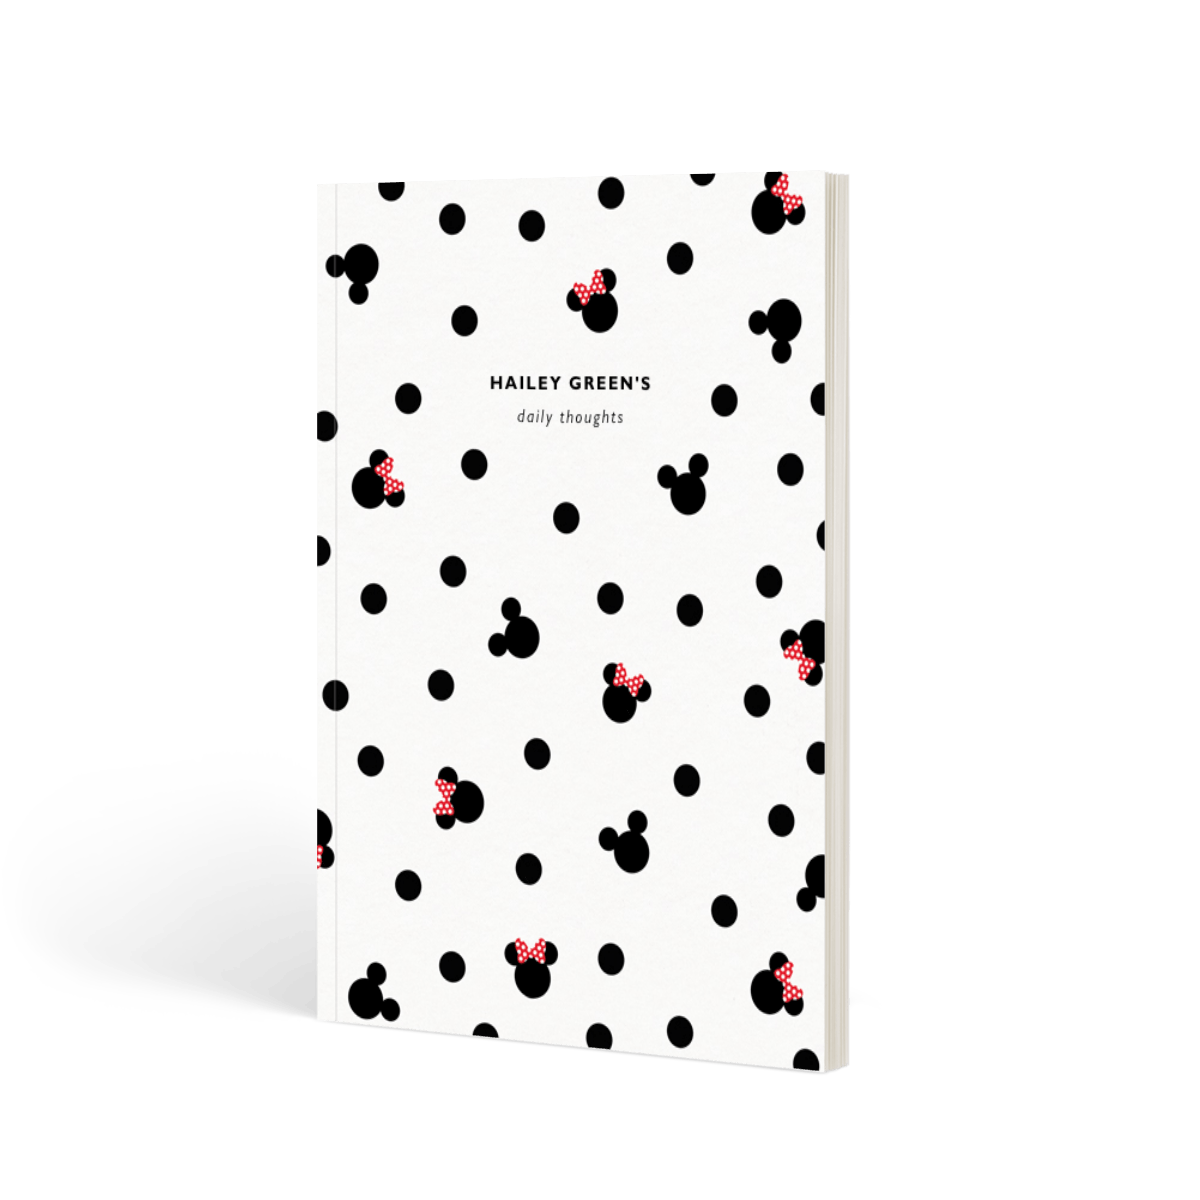 Https%3a%2f%2fwww.papier.com%2fproduct image%2f55816%2f6%2fmickey minnie mouse 13405 front 1542299837.png?ixlib=rb 1.1